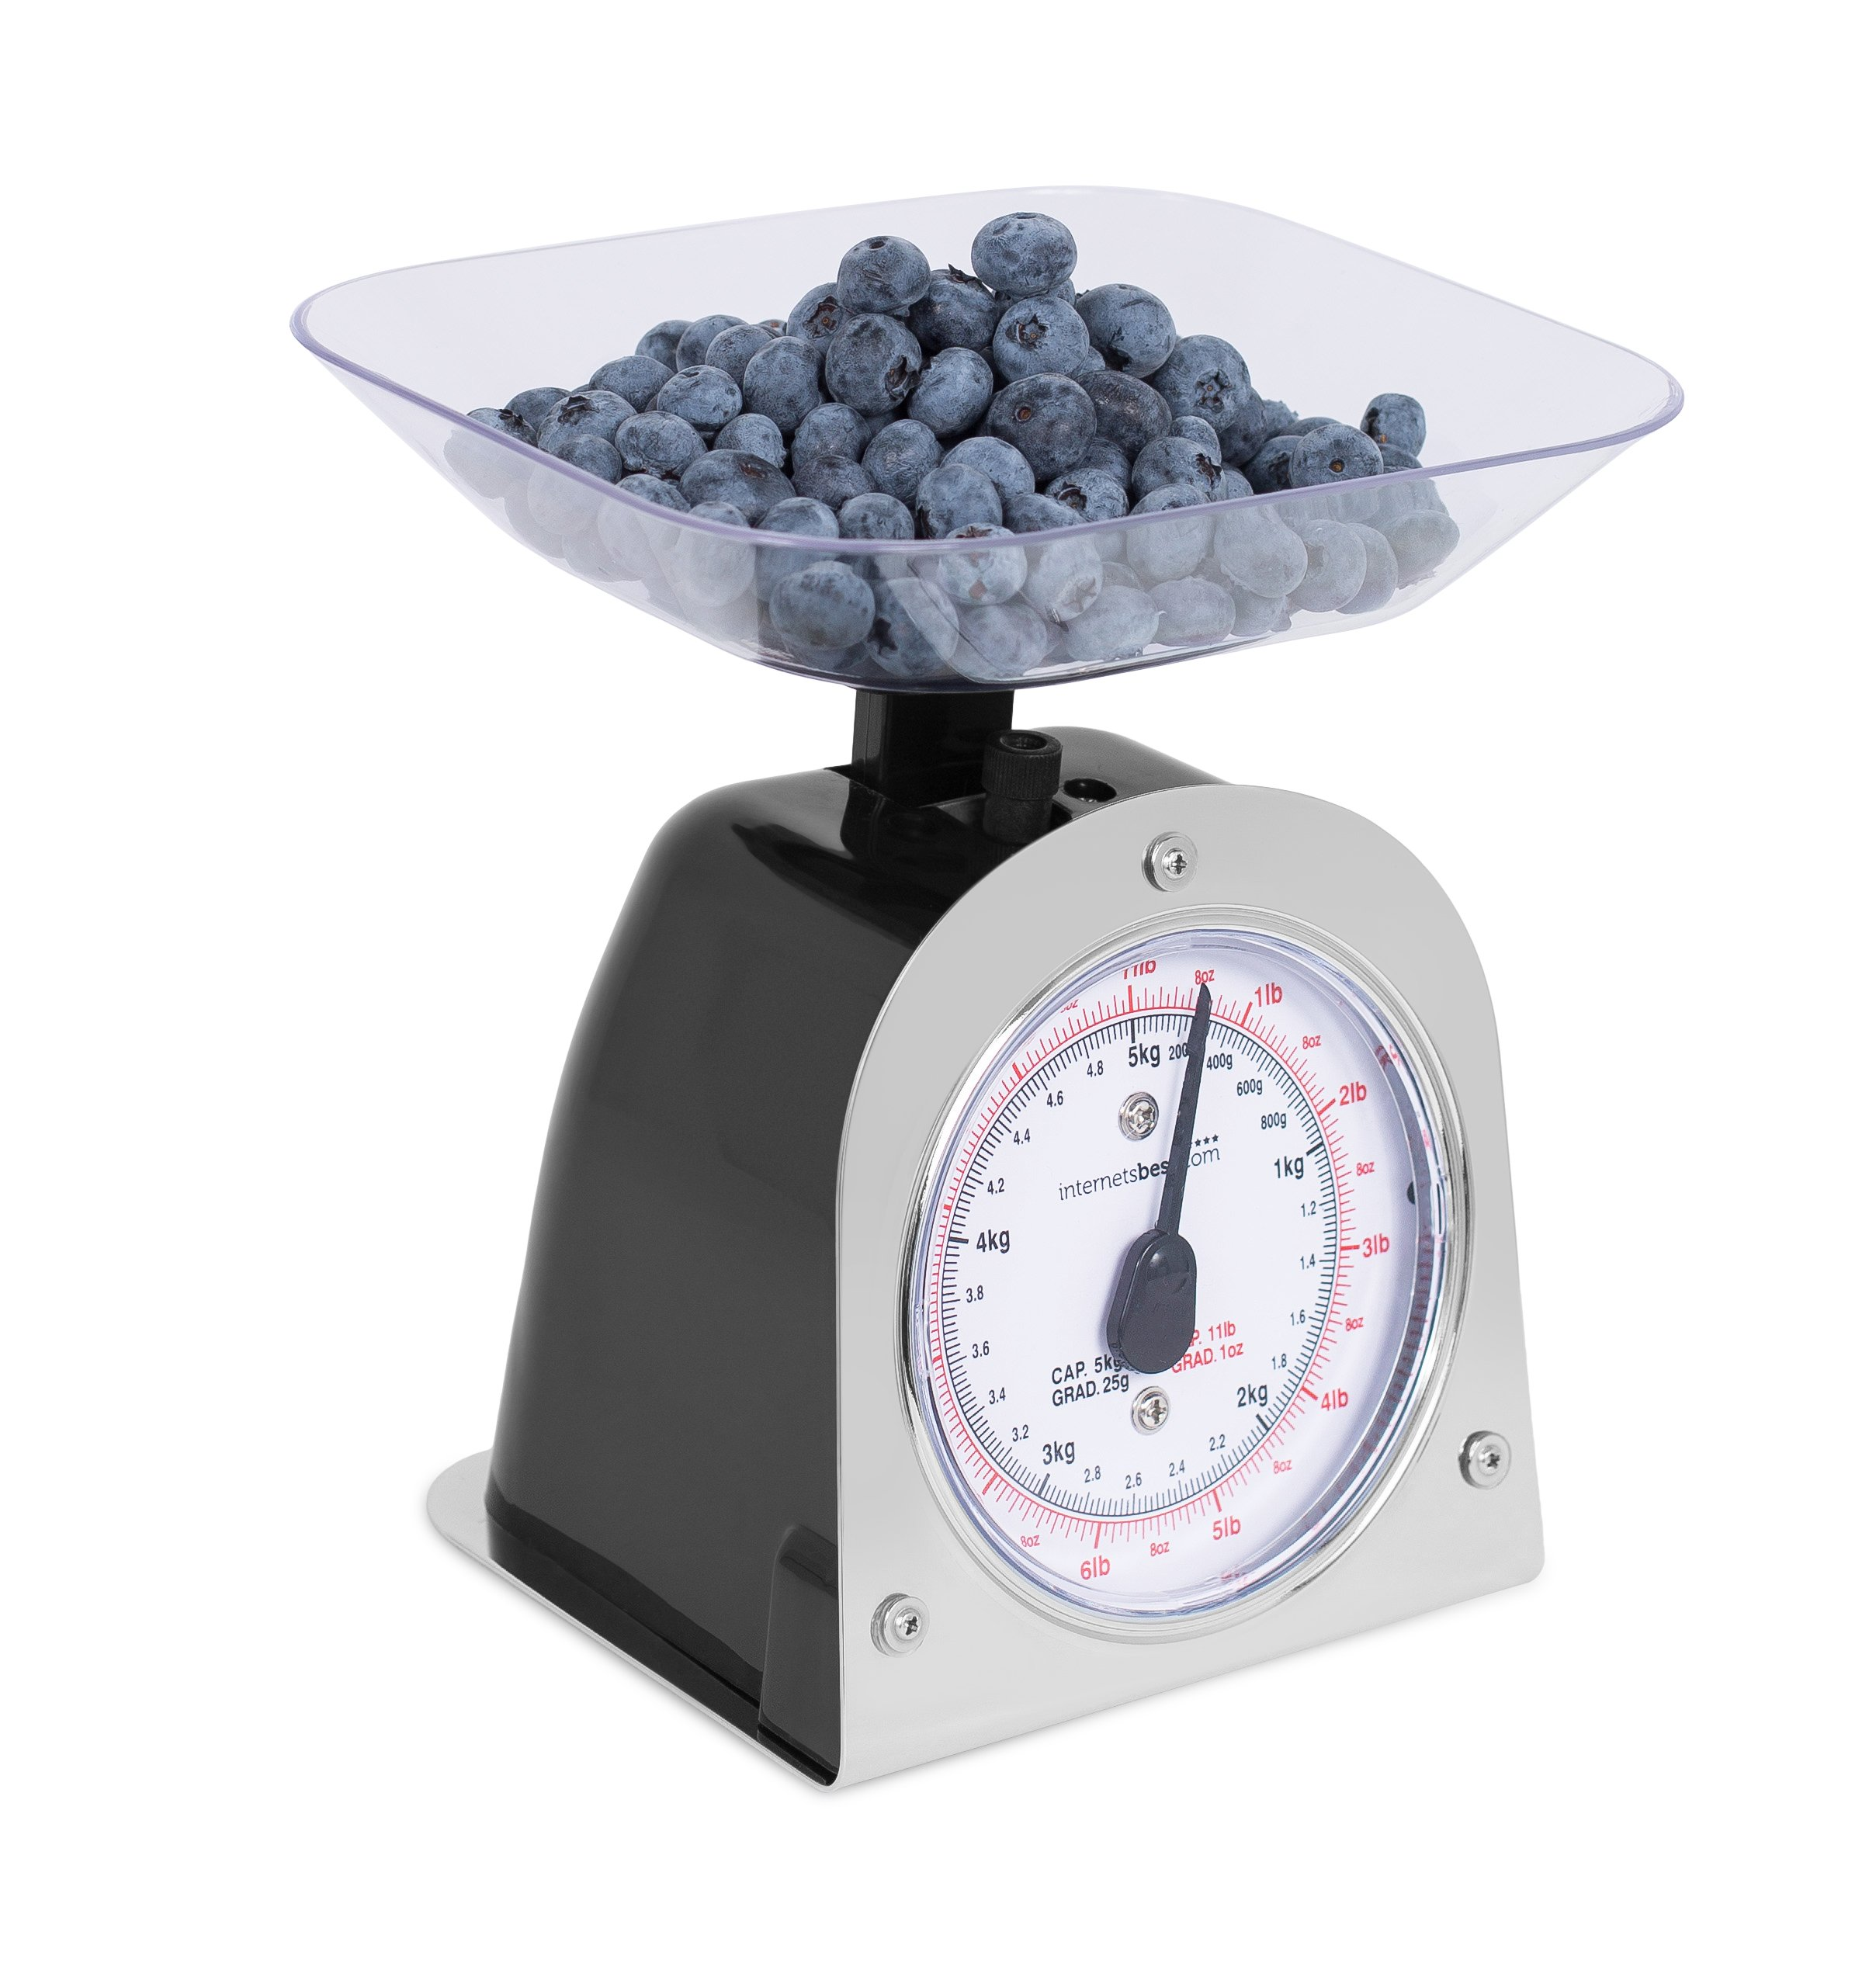 Internet's Best Mechanical Kitchen Food Weight Scale with Bowl | Accurate Measurements | Weighs Up 11 Lbs | 1KG - 5KG by Internet's Best (Image #1)